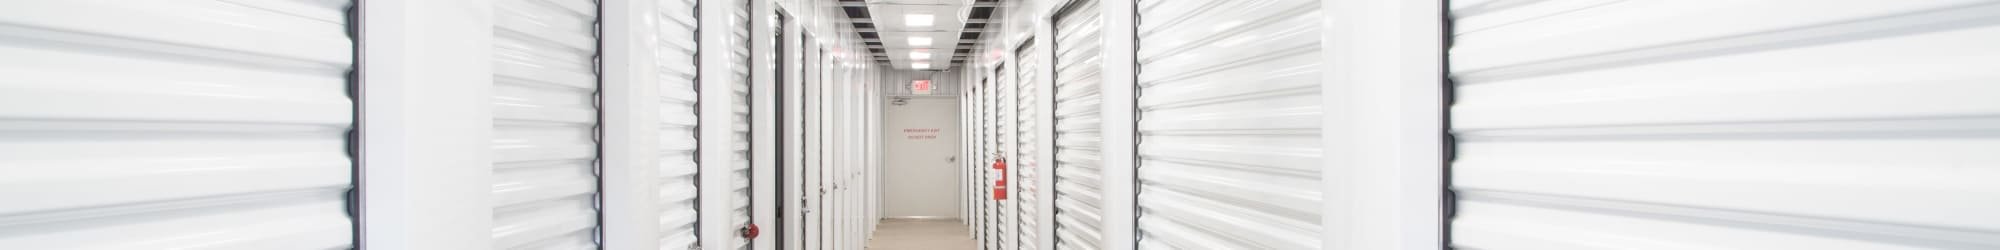 Self storage units for rent in Oxford, MS